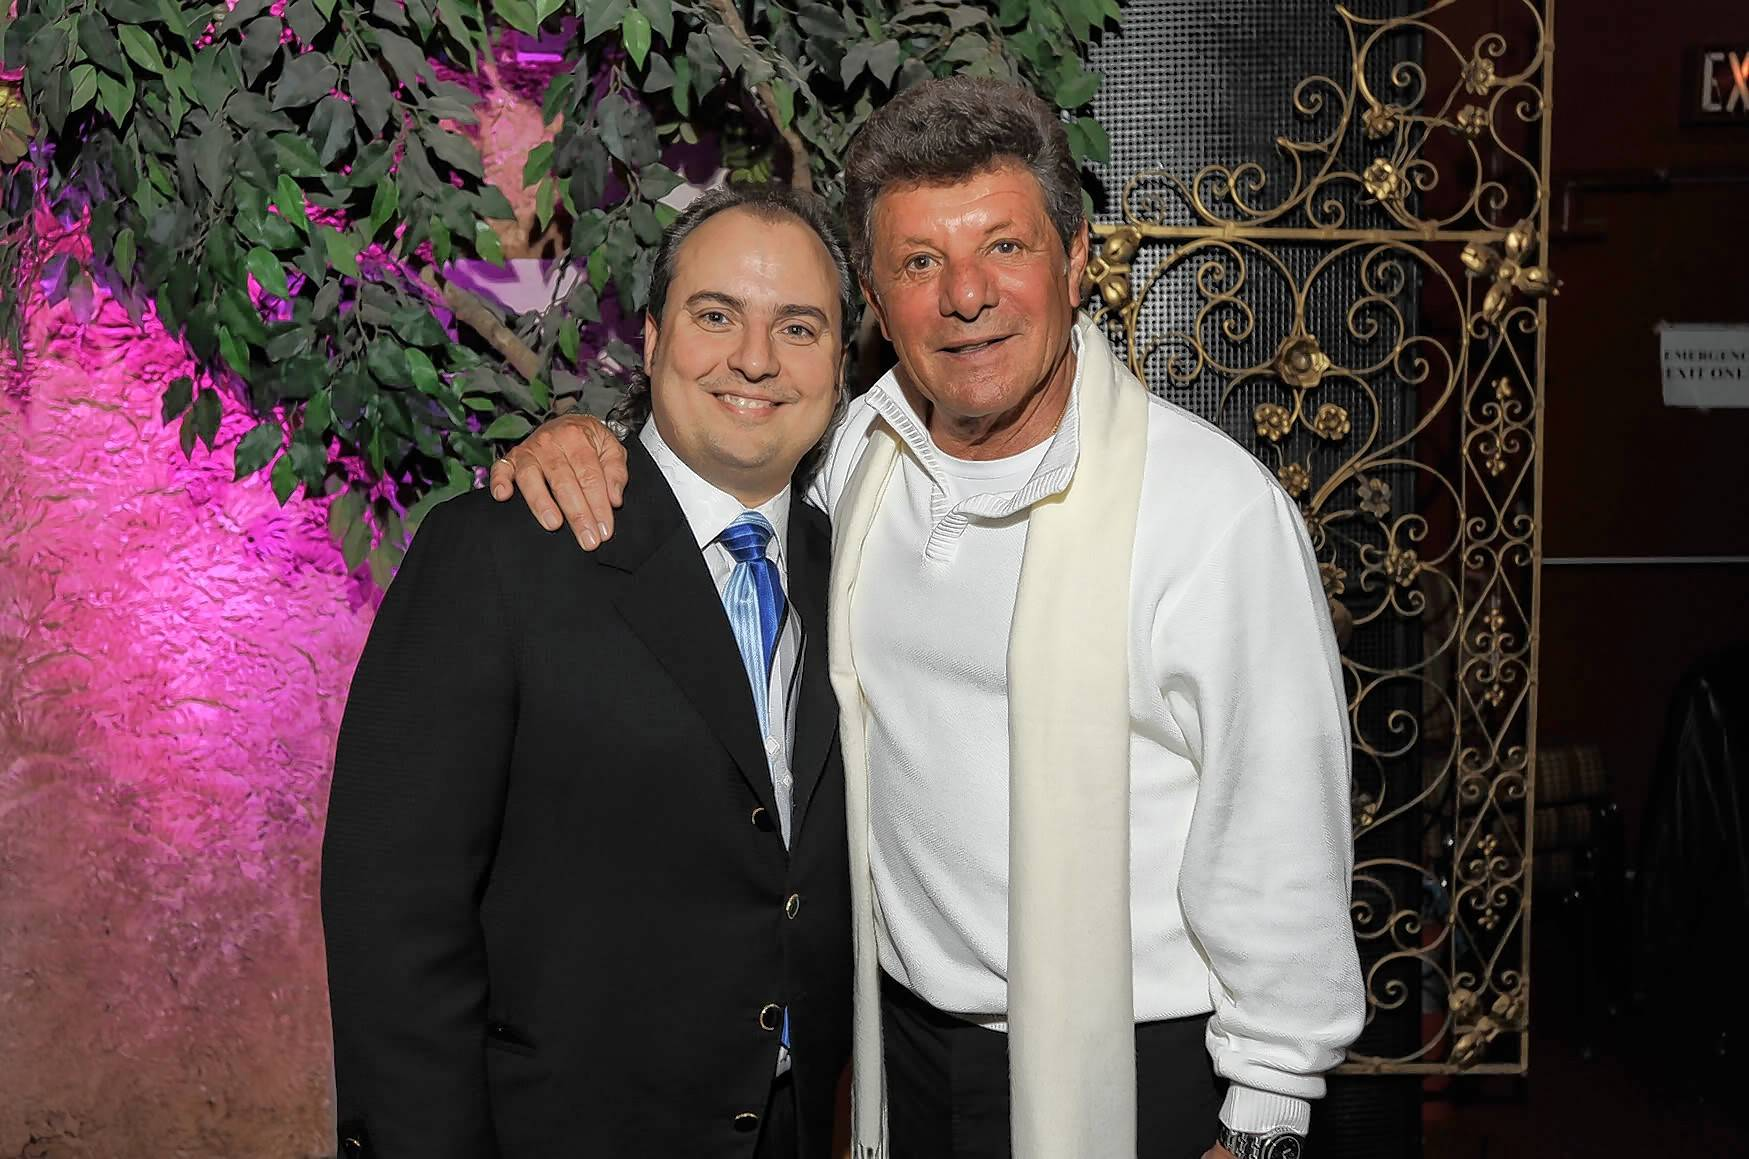 Frankie Avalon, right, performed at the Arcada Theatre in St. Charles last week, and before the show chatted with owner Ron Onesti.